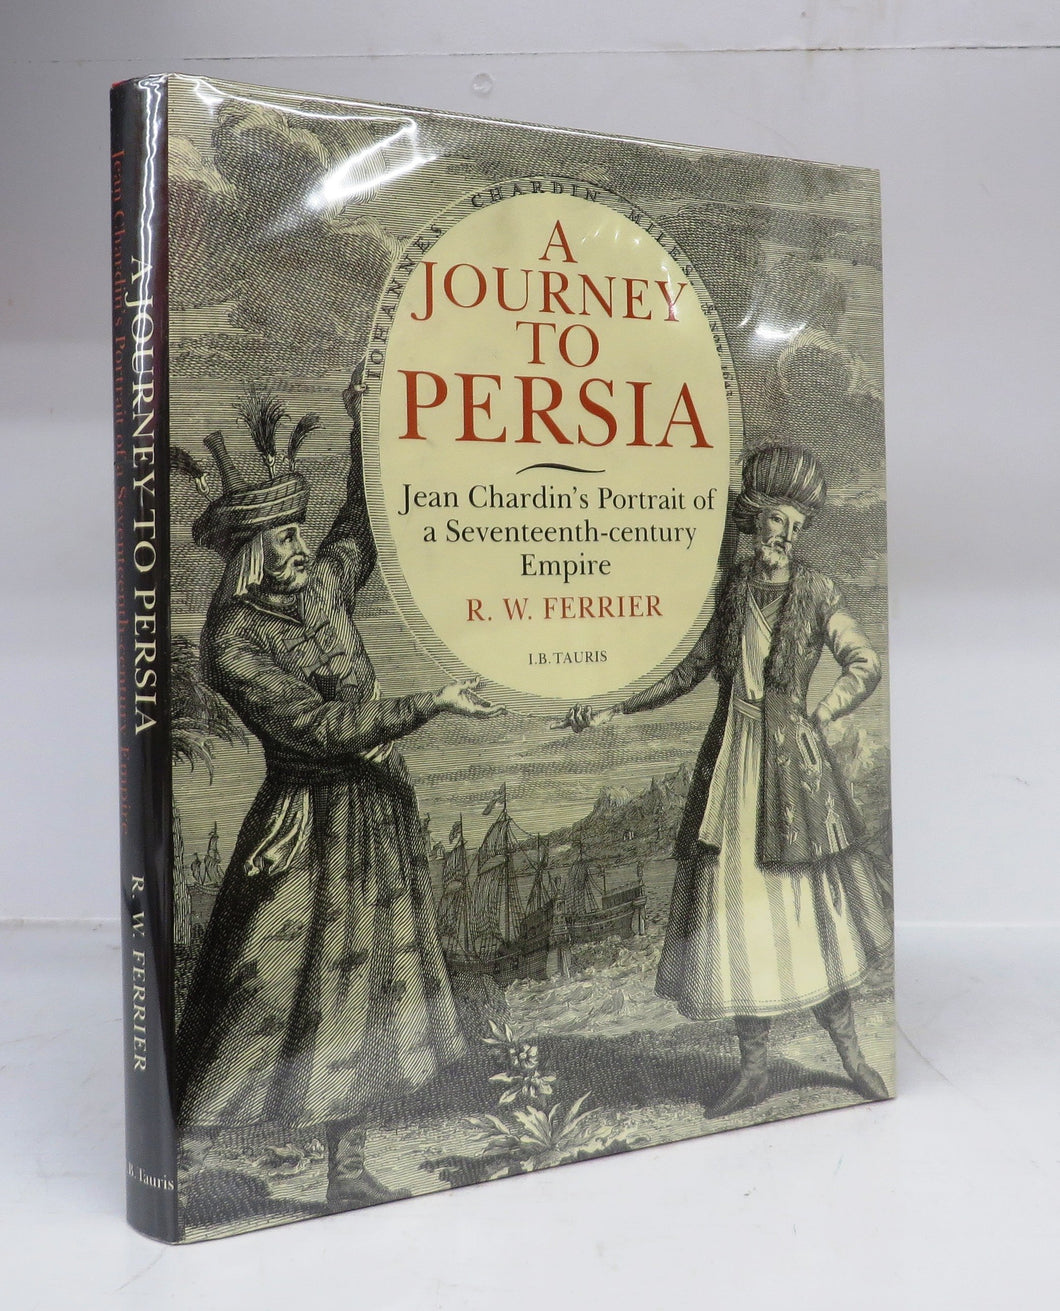 A Journey To Persia: Jean Chardin's Portrait of a Seventeenth-century Empire